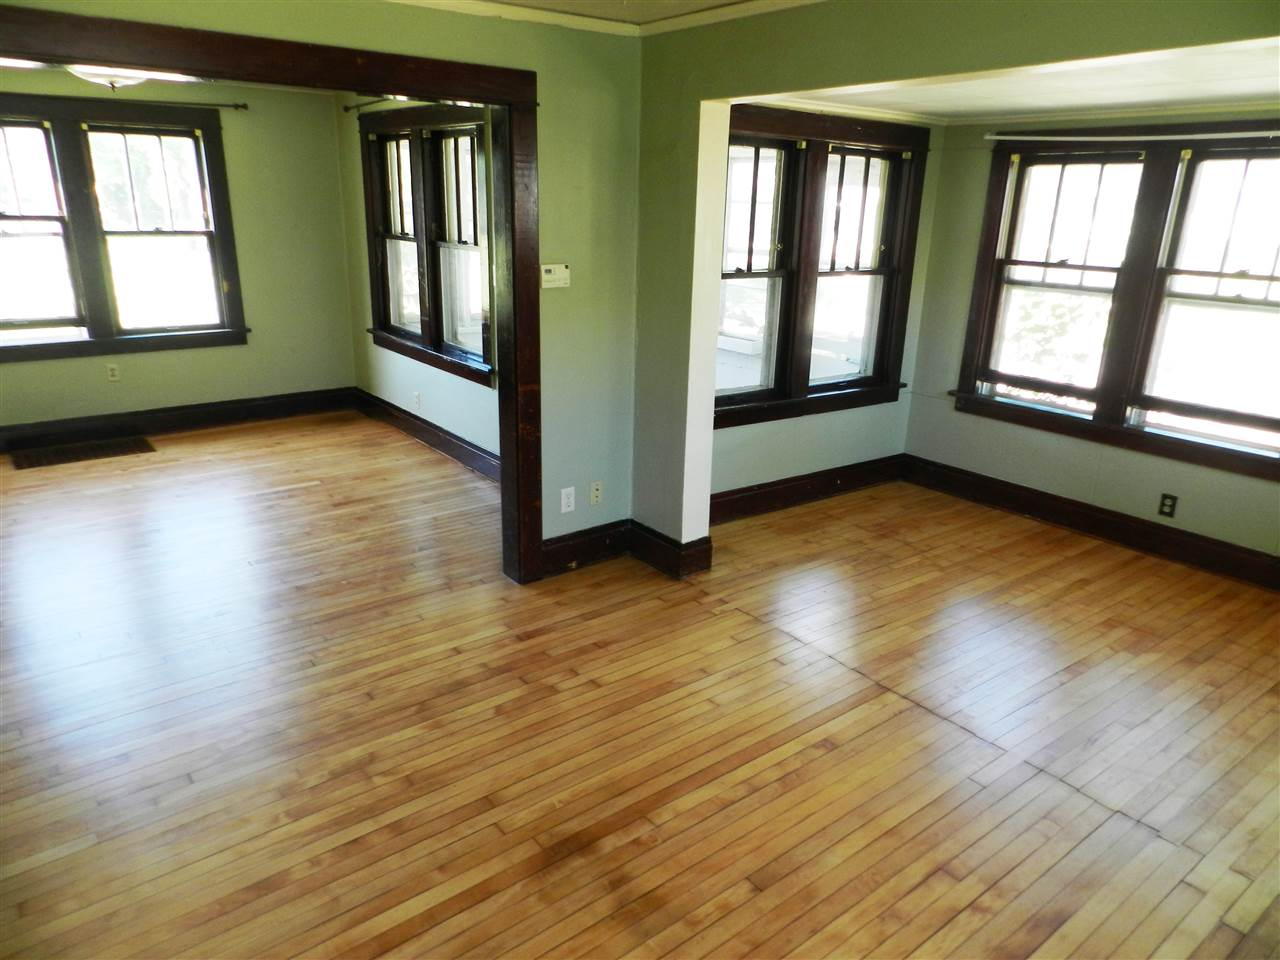 57 Wirth Ct, Madison, Wisconsin 53704, 4 Bedrooms Bedrooms, ,Rental,For Rent,Wirth Ct,1900682